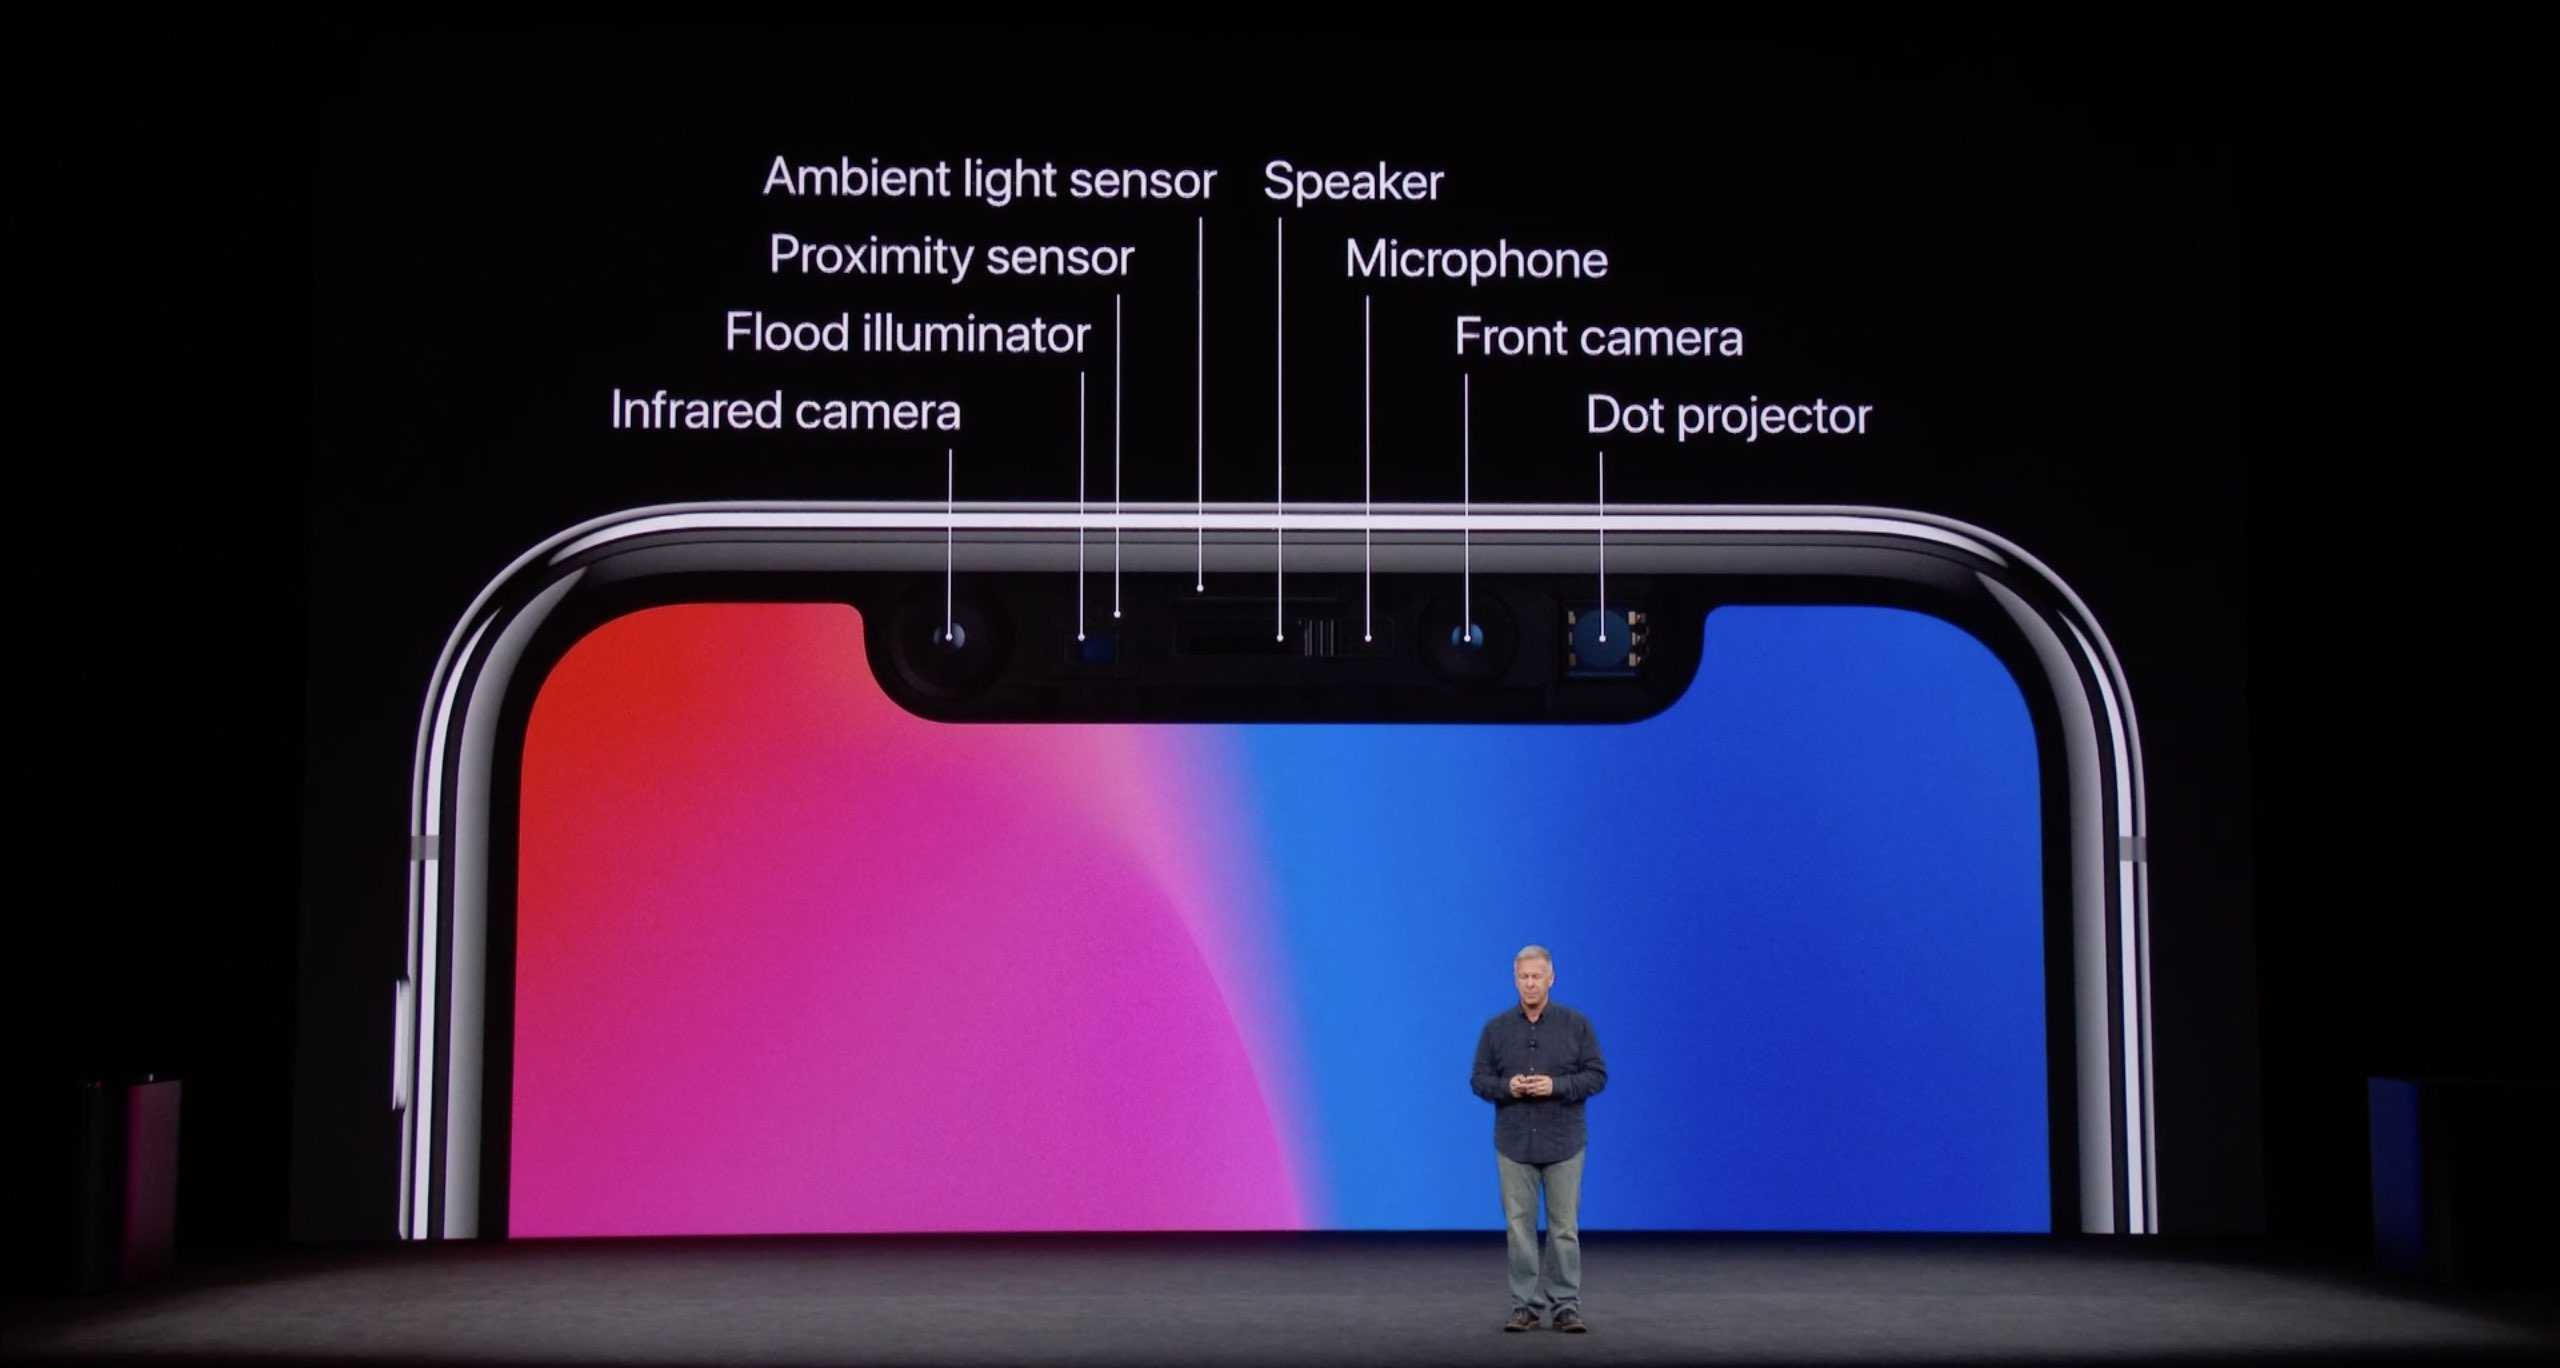 A slide from Apple product event showing the TrueDepth camera system with sensors on the iPhone X